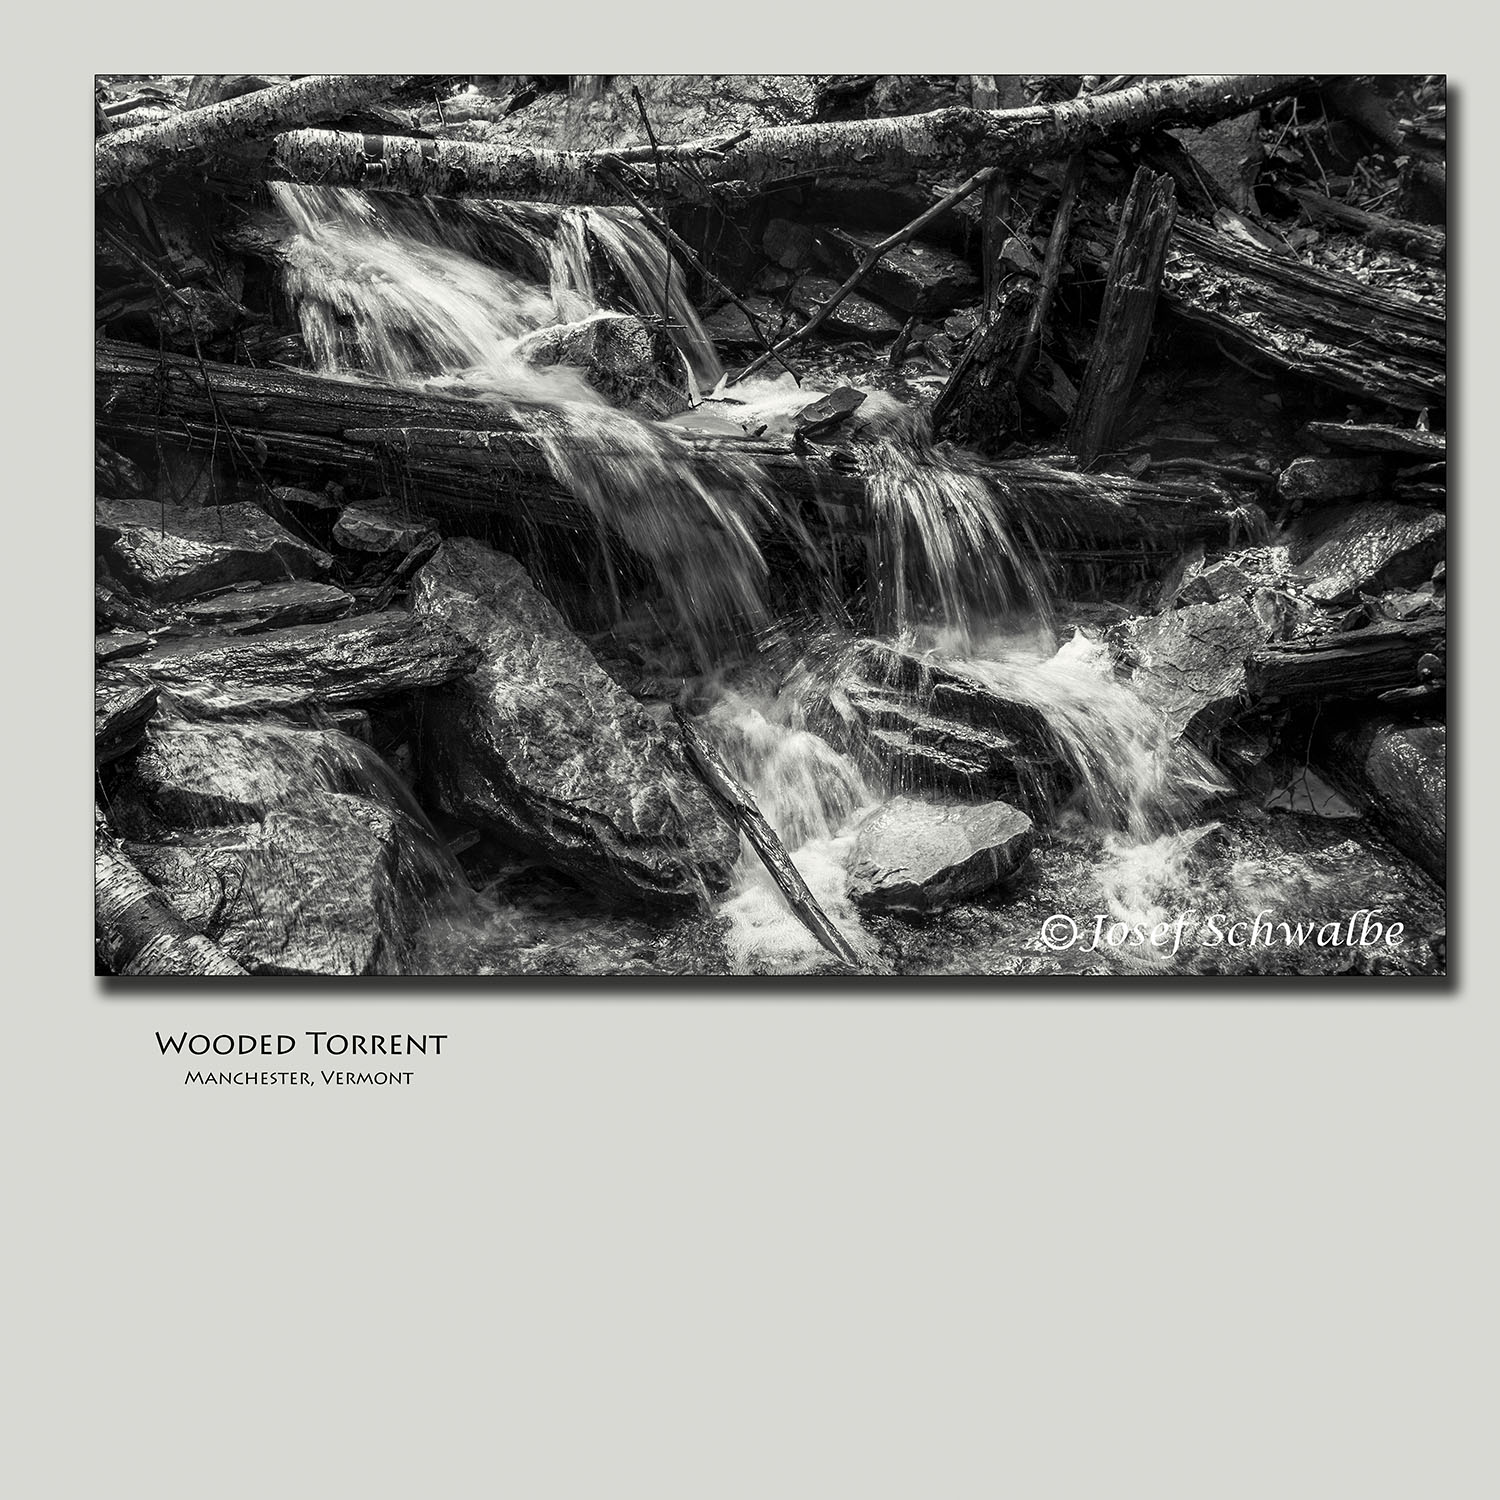 Wooded Torrent